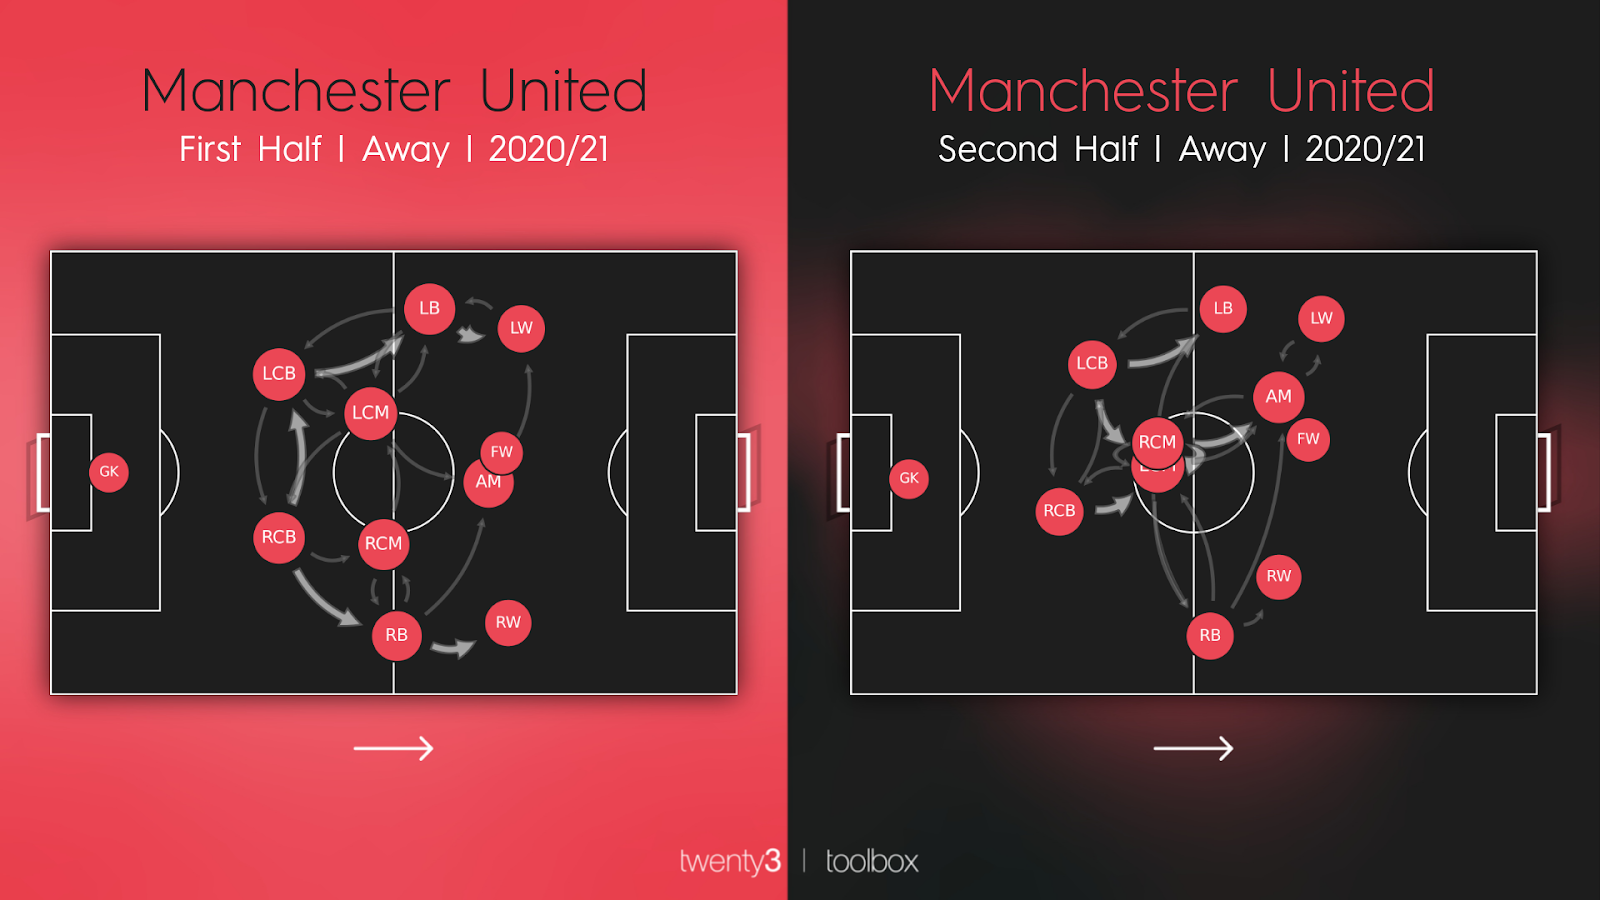 Manchester United pass map in the first half vs the second half during the 2020/21 season.